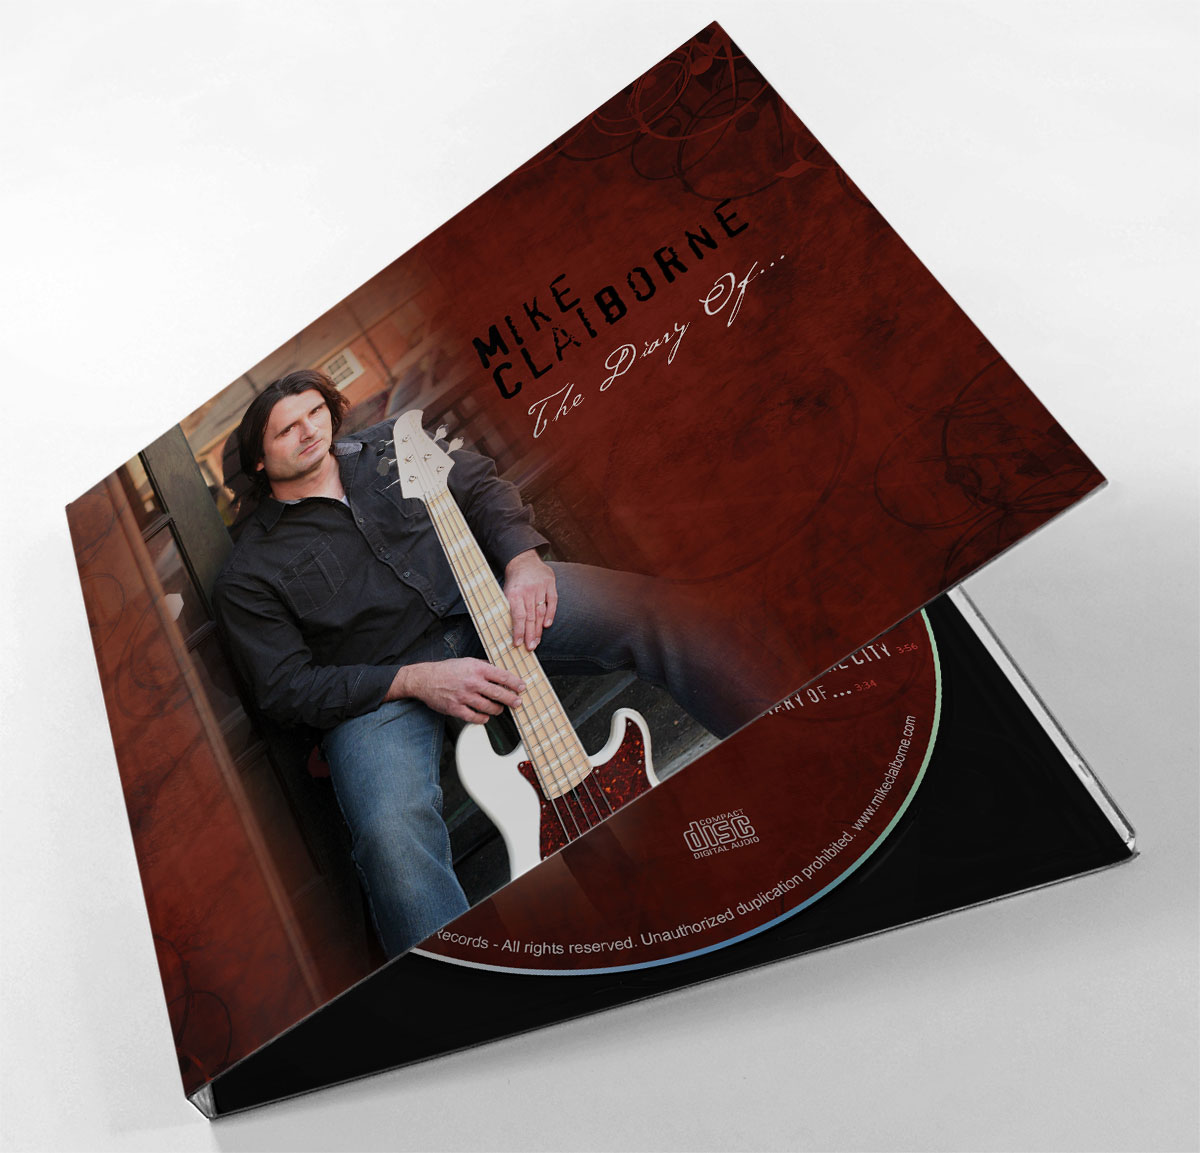 Mike Claiborne CD